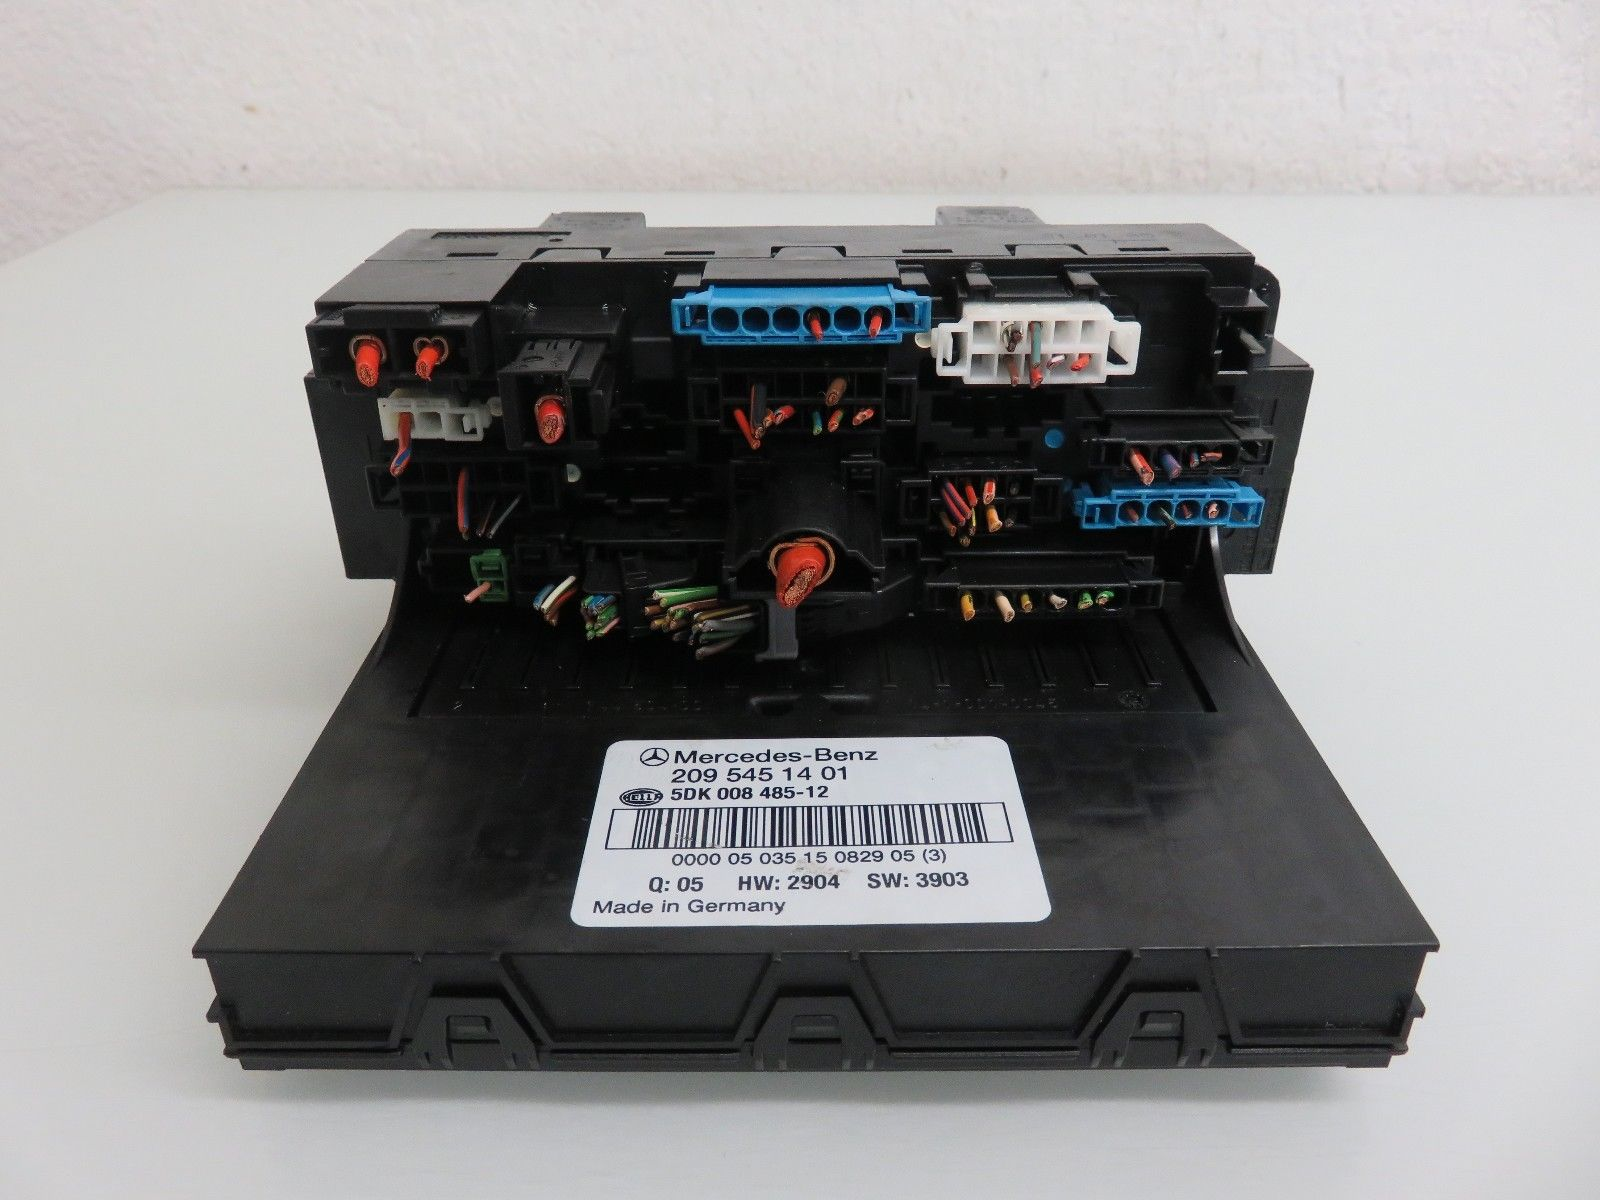 01-07 MERCEDES-BENZ W203 C230 C240 C320 FRONT SAM FUSE RELAY BOX OEM A2095451401